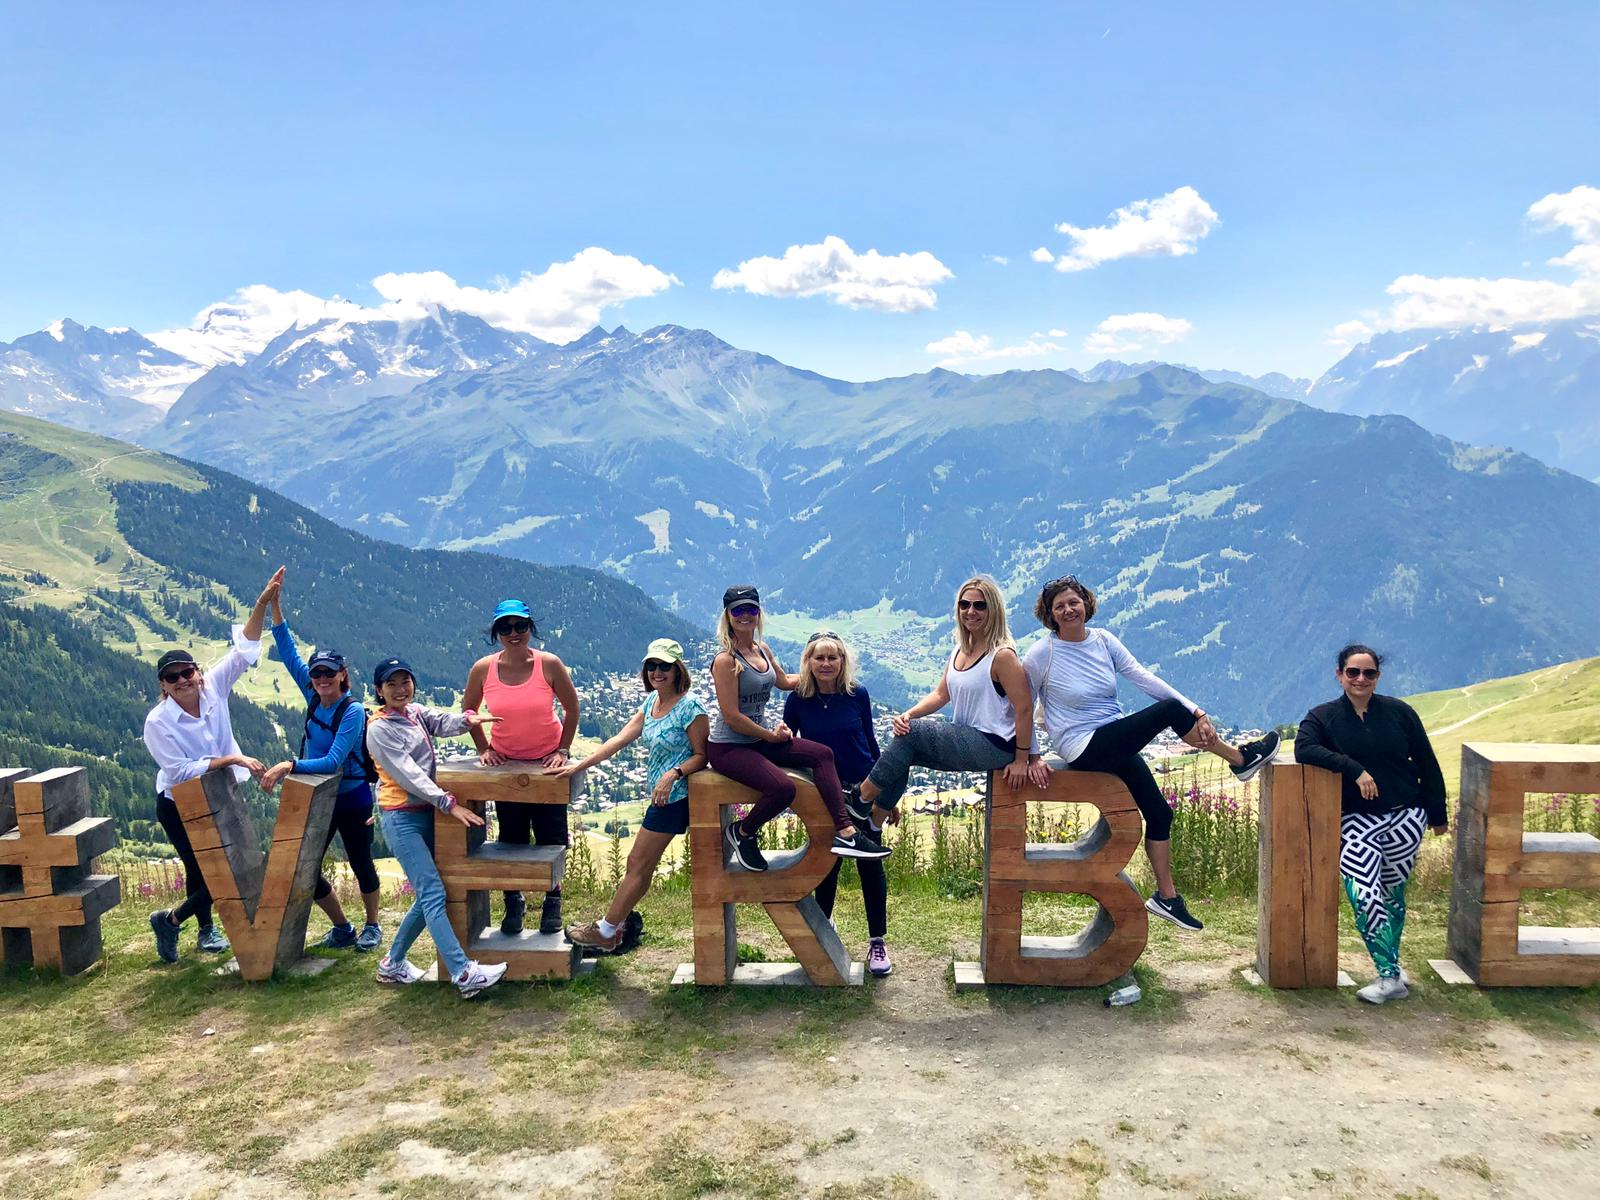 Most of the Exotic Yoga Retreats team out on a hike in Verbier!